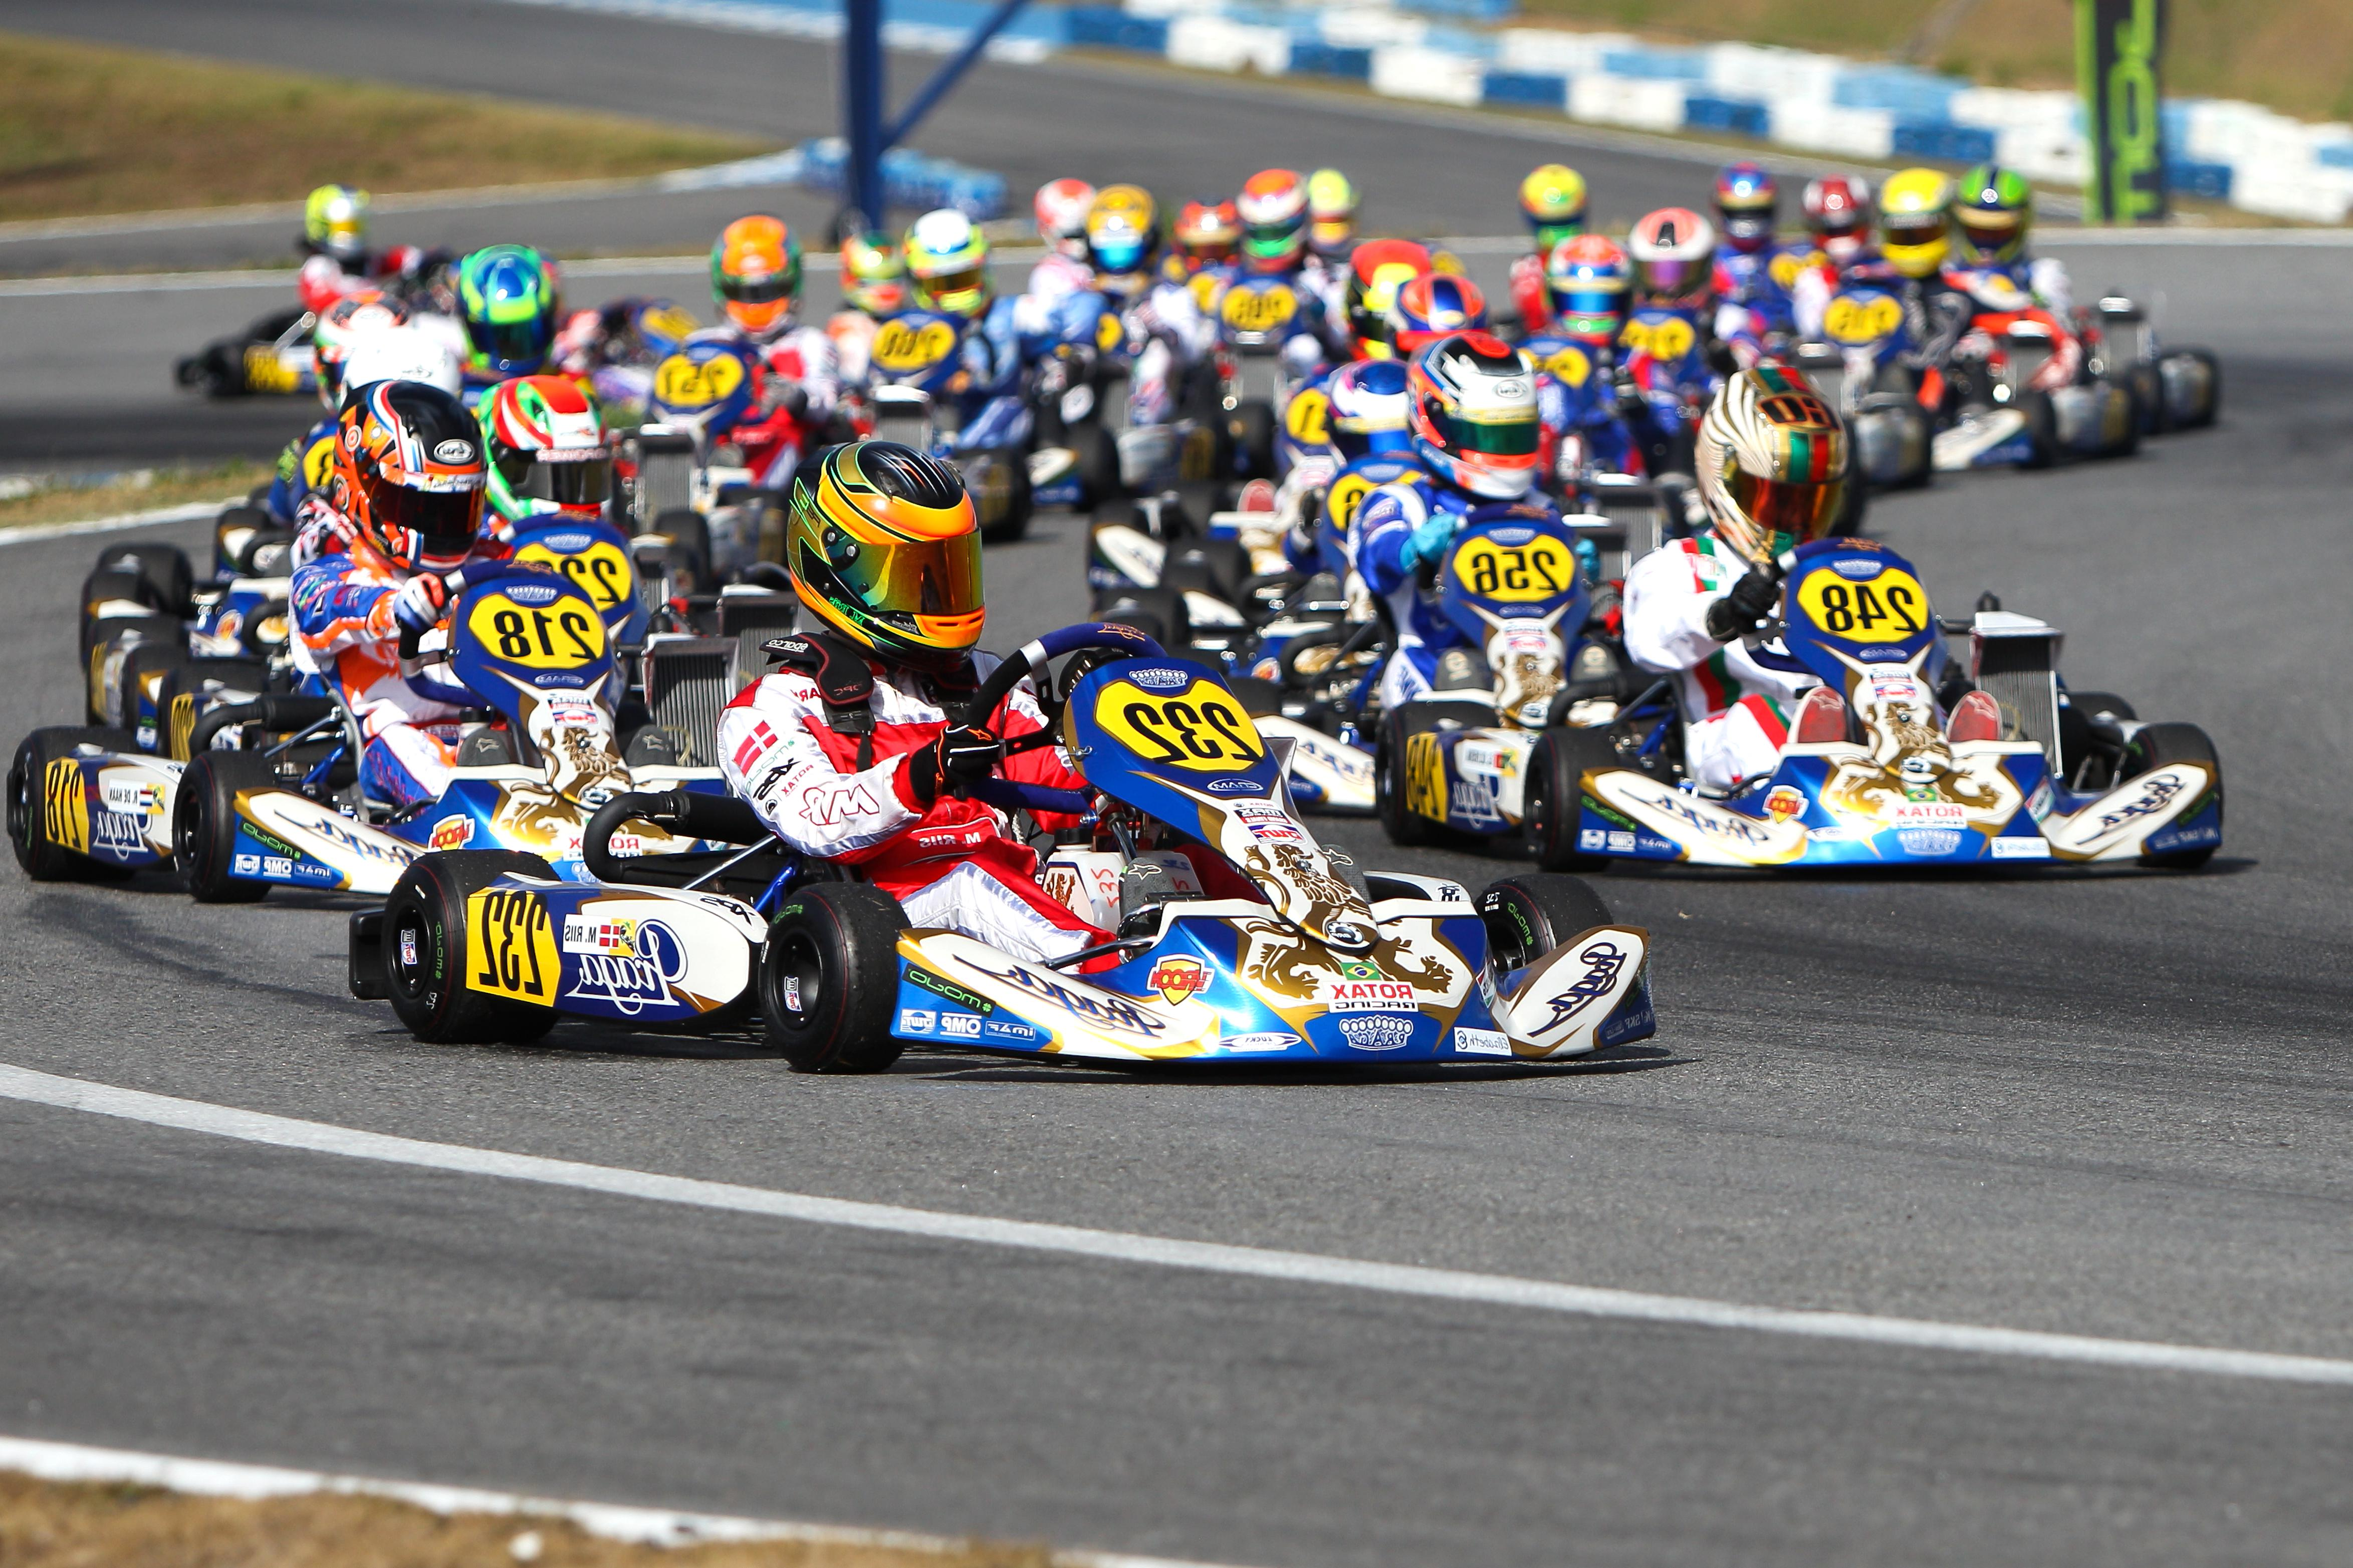 rotax kart for sale